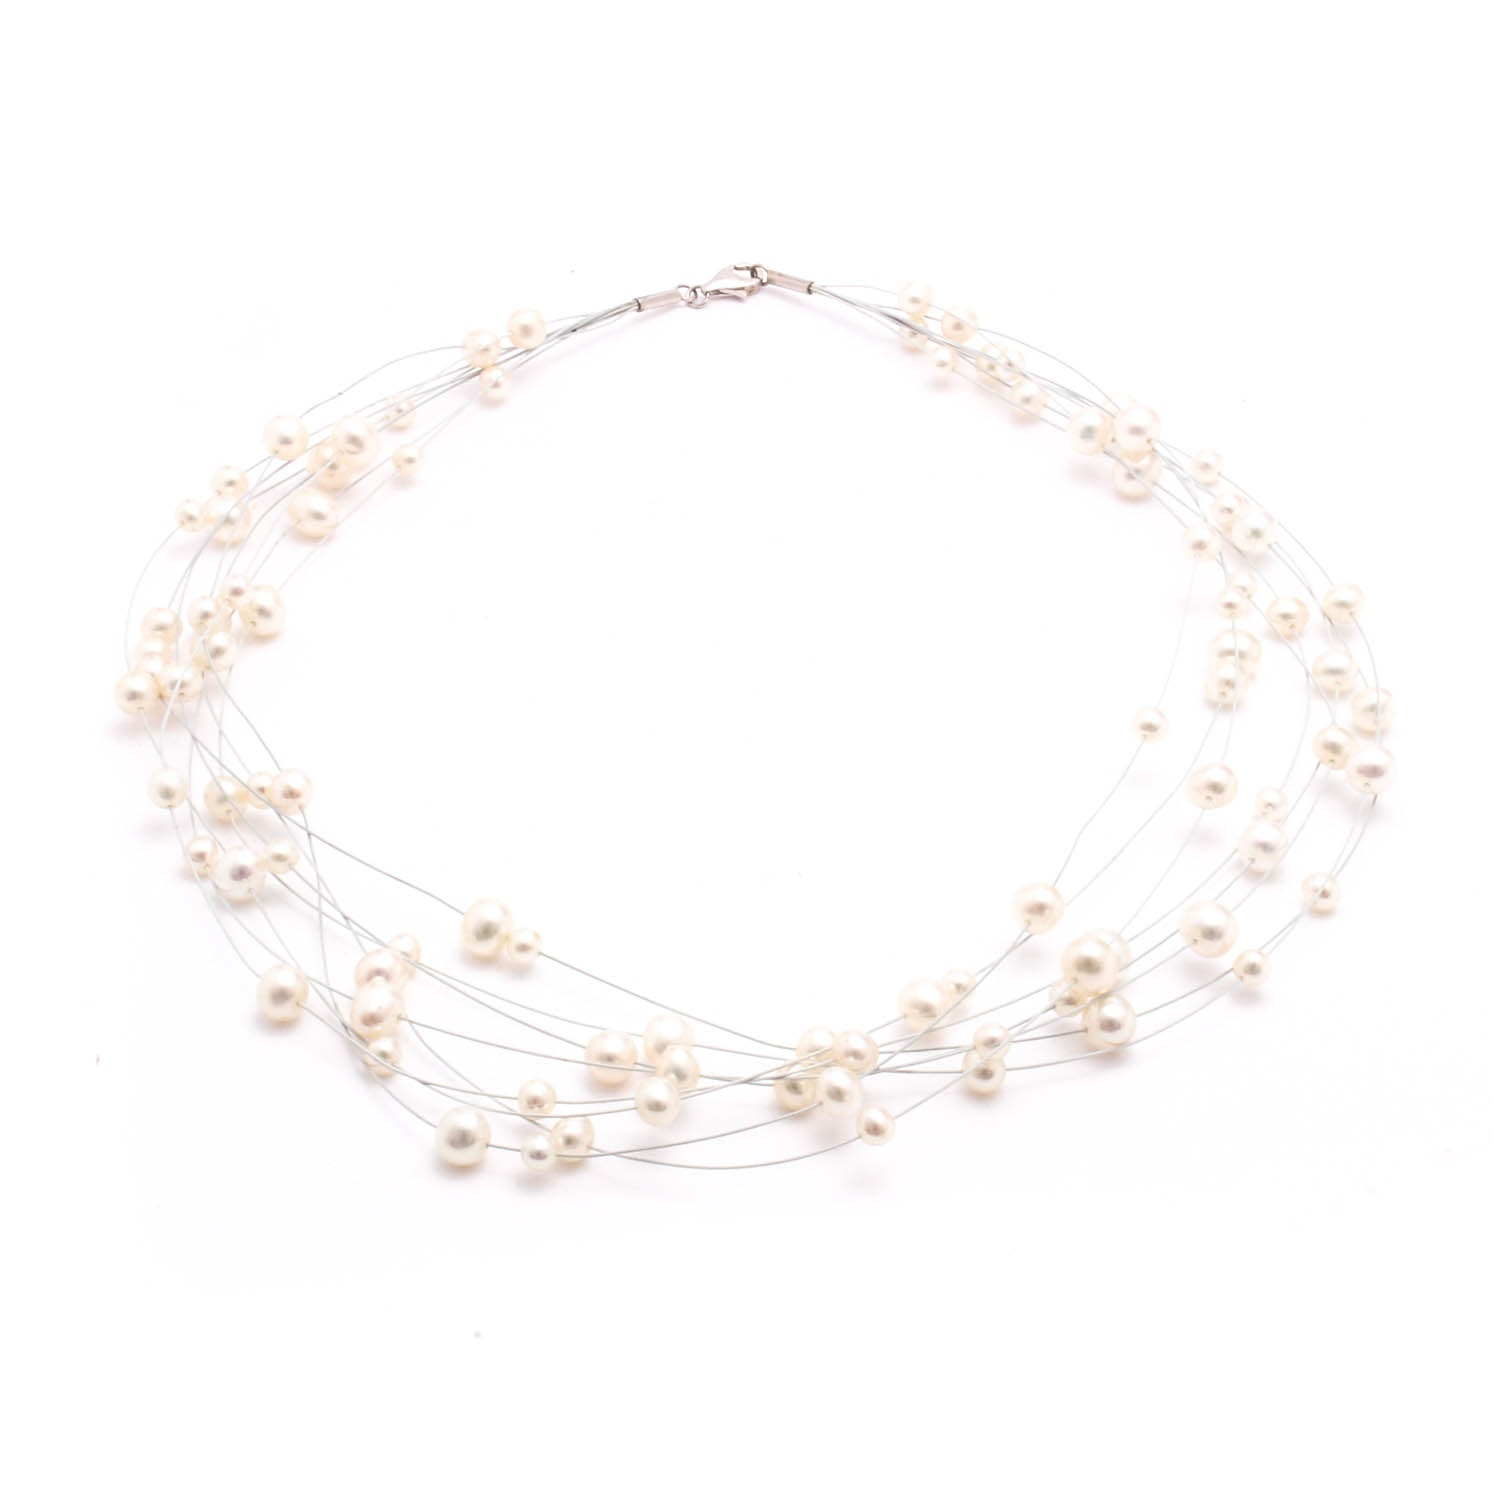 Cultured Freshwater Pearl Necklace with Sterling Silver Clasp